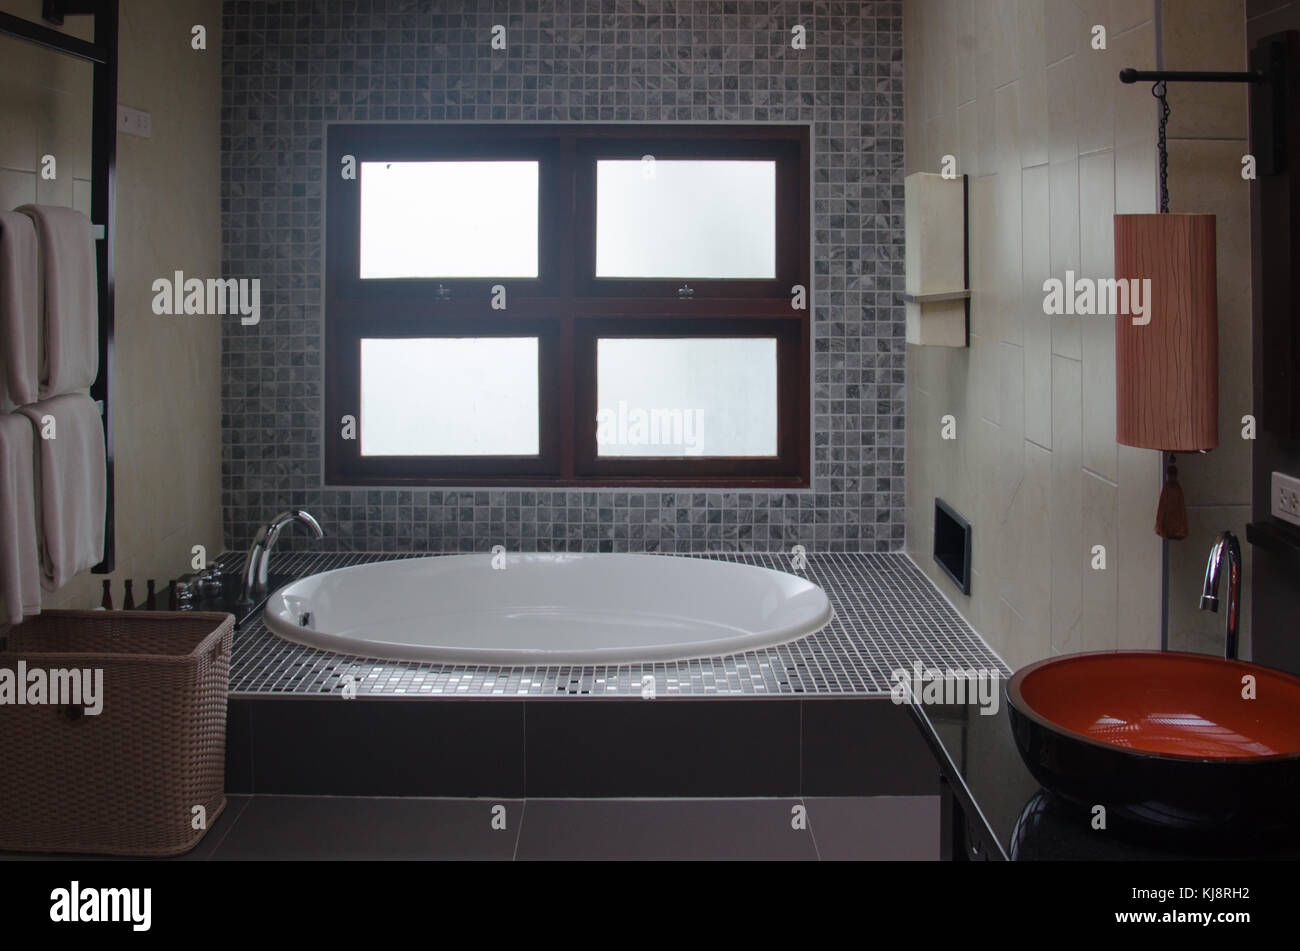 Picture of: Modern Bathroom Interior With Bathtubs And Sinks Stock Photo Alamy